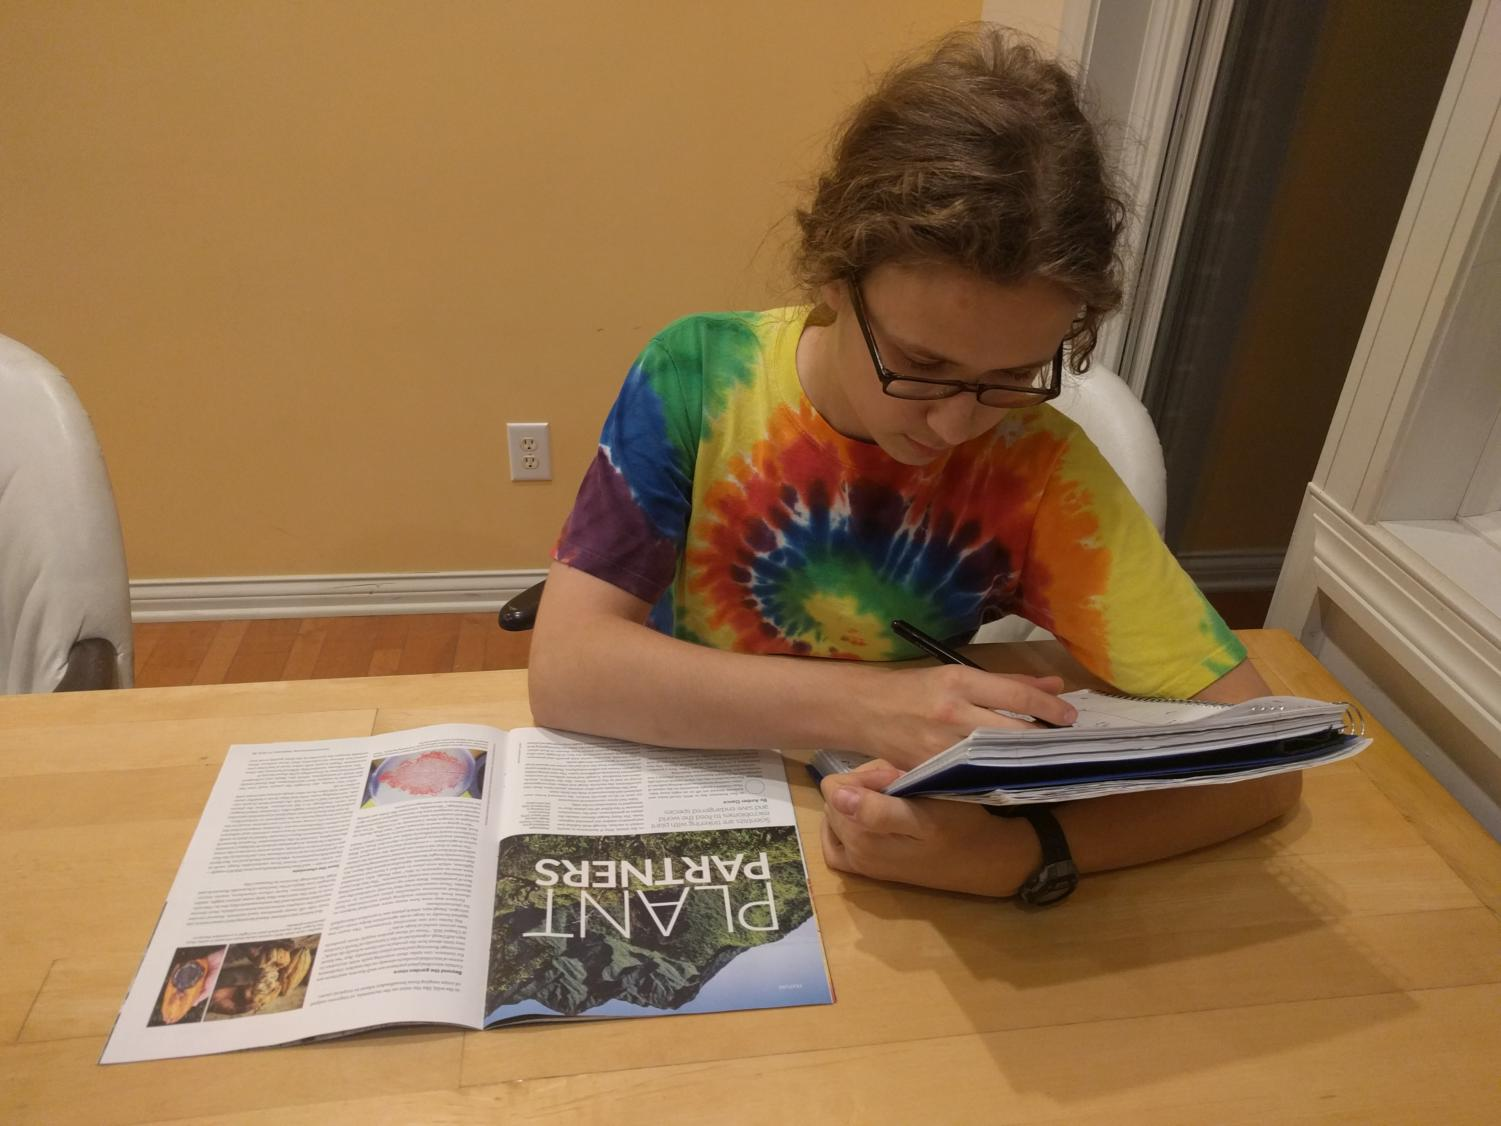 Kian Robinson, club member and junior, reads an article in a magazine about green initiatives.